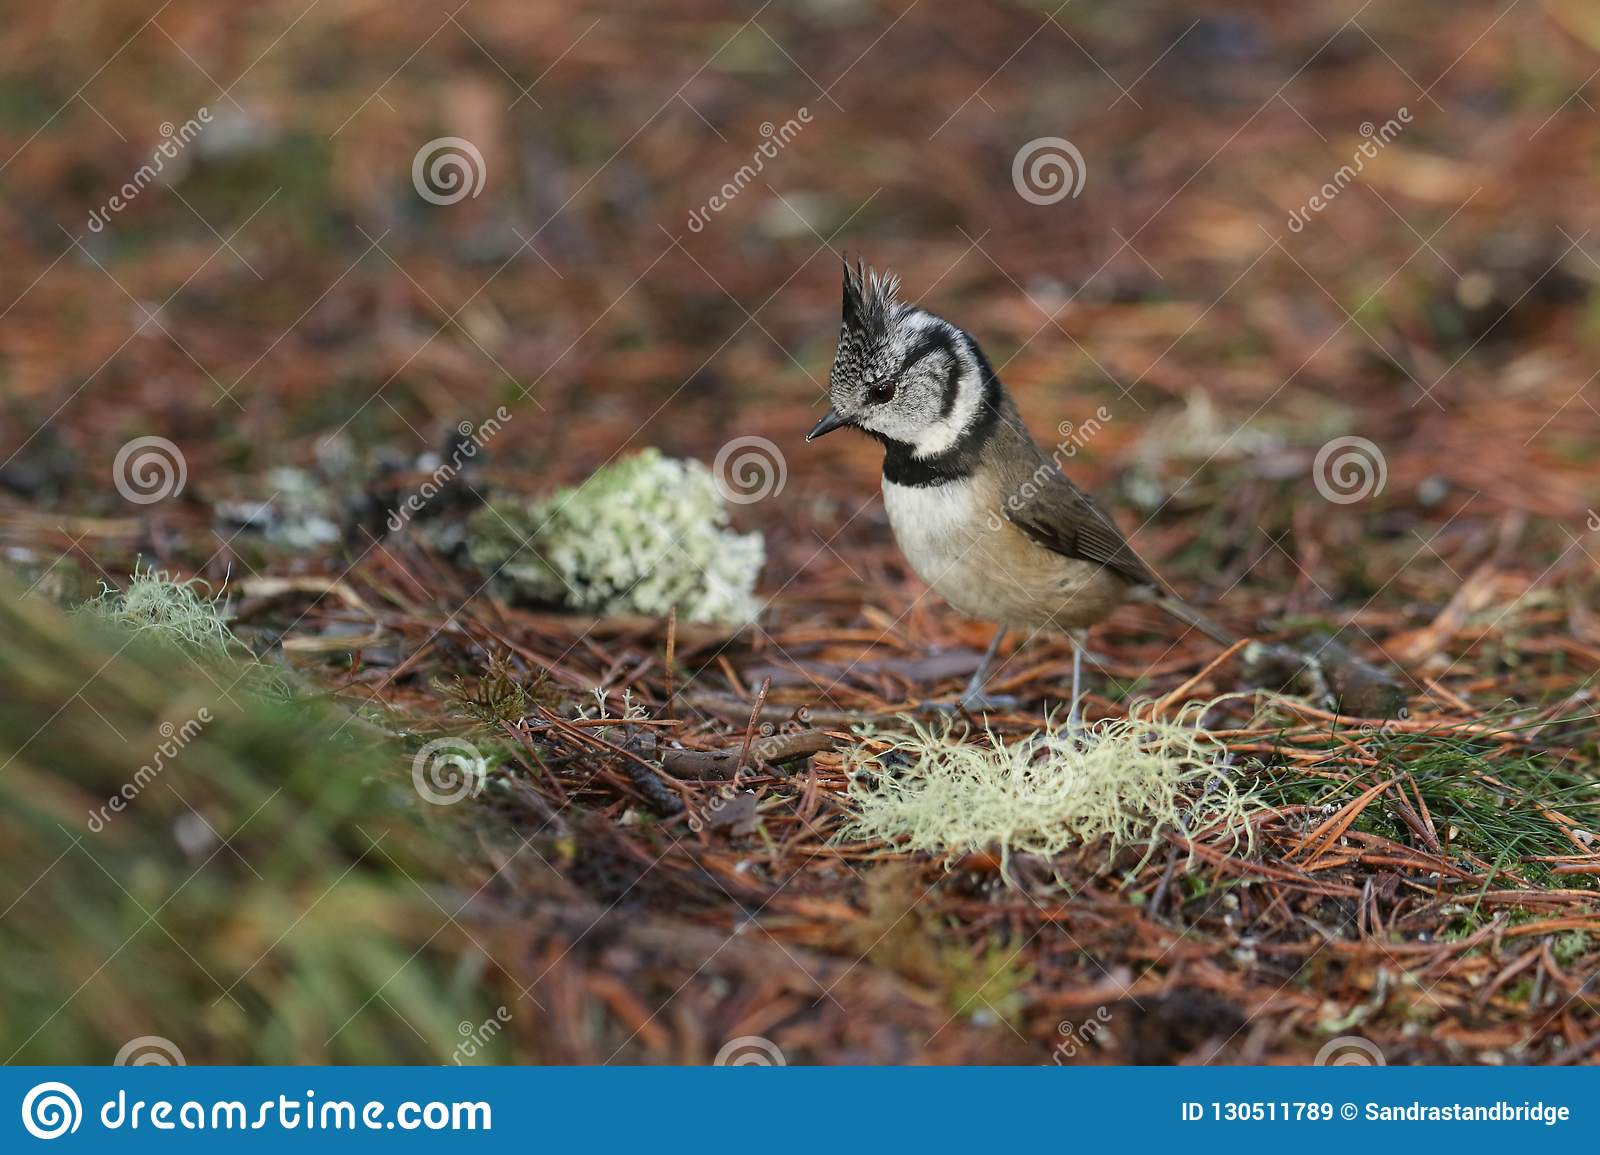 A Rare Crested Tit Lophophanes Cristatus Searching For Food